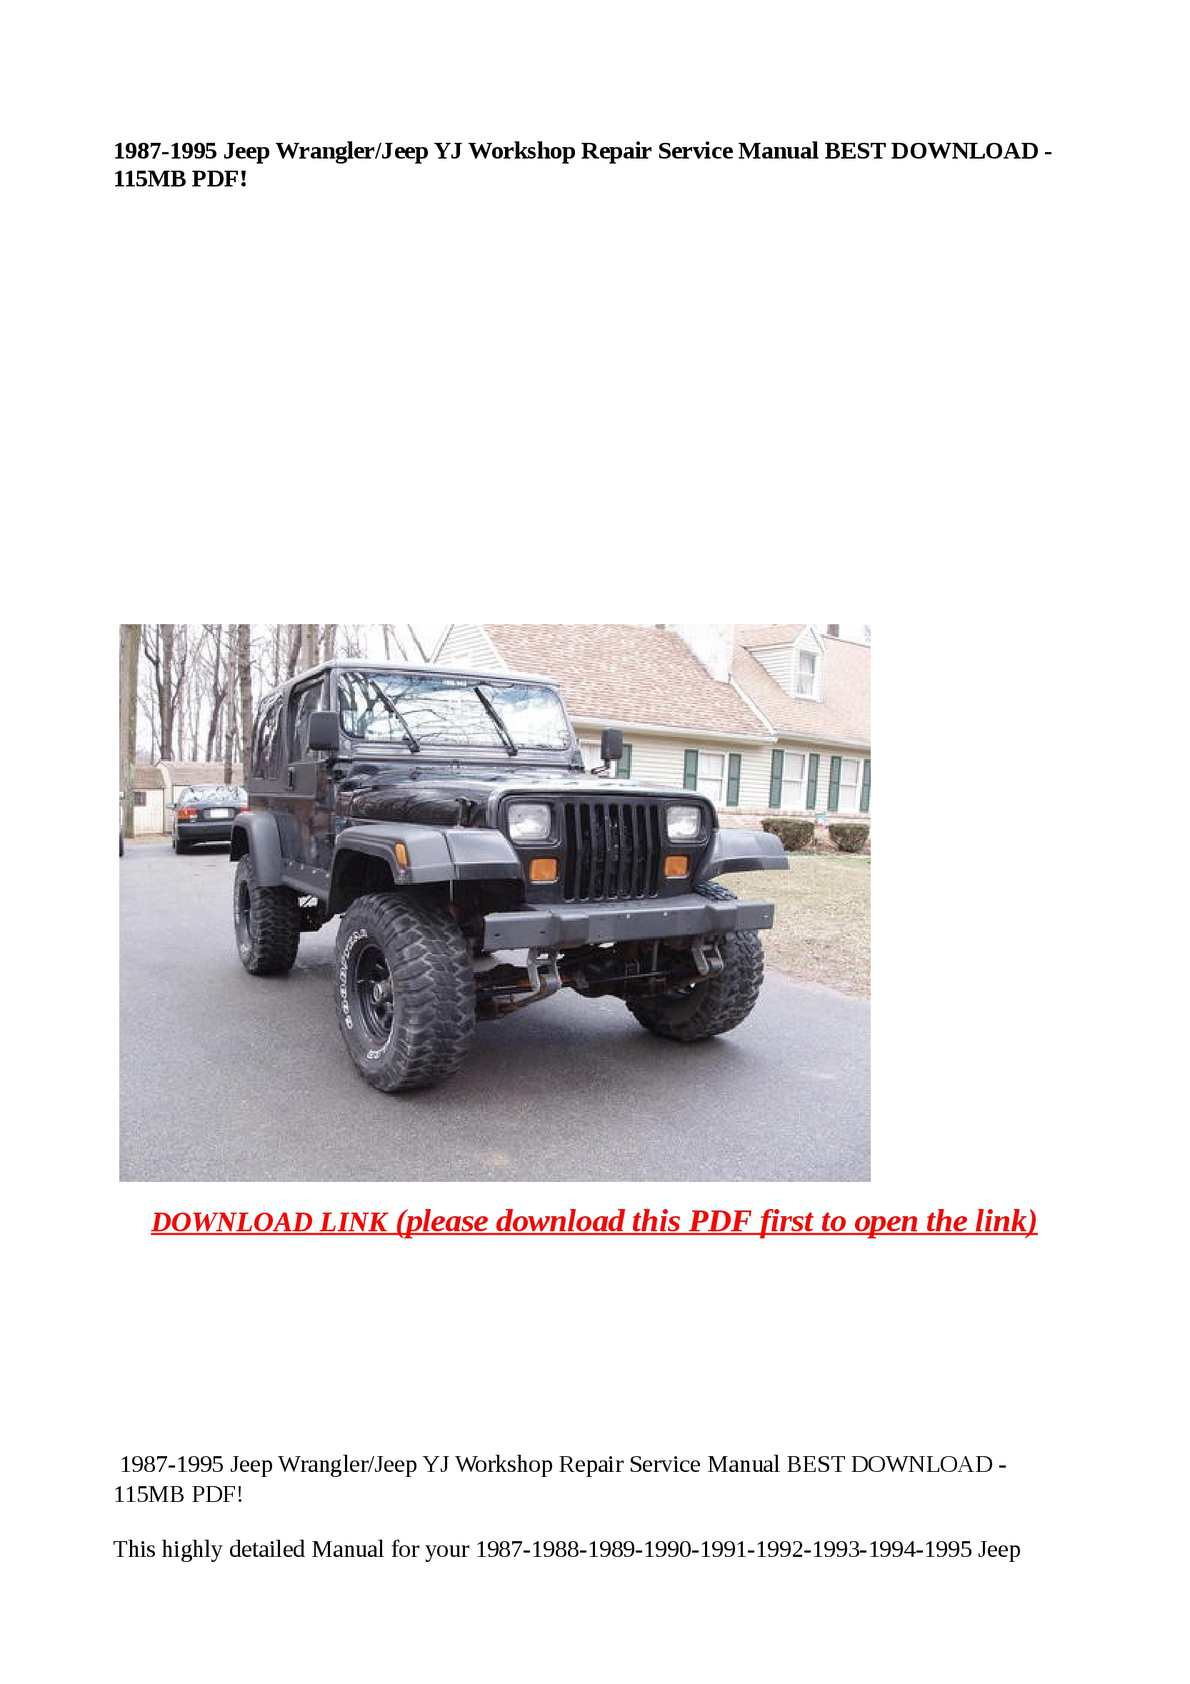 hight resolution of calam o 1987 1995 jeep wrangler jeep yj workshop repair service manual best download 115mb pdf